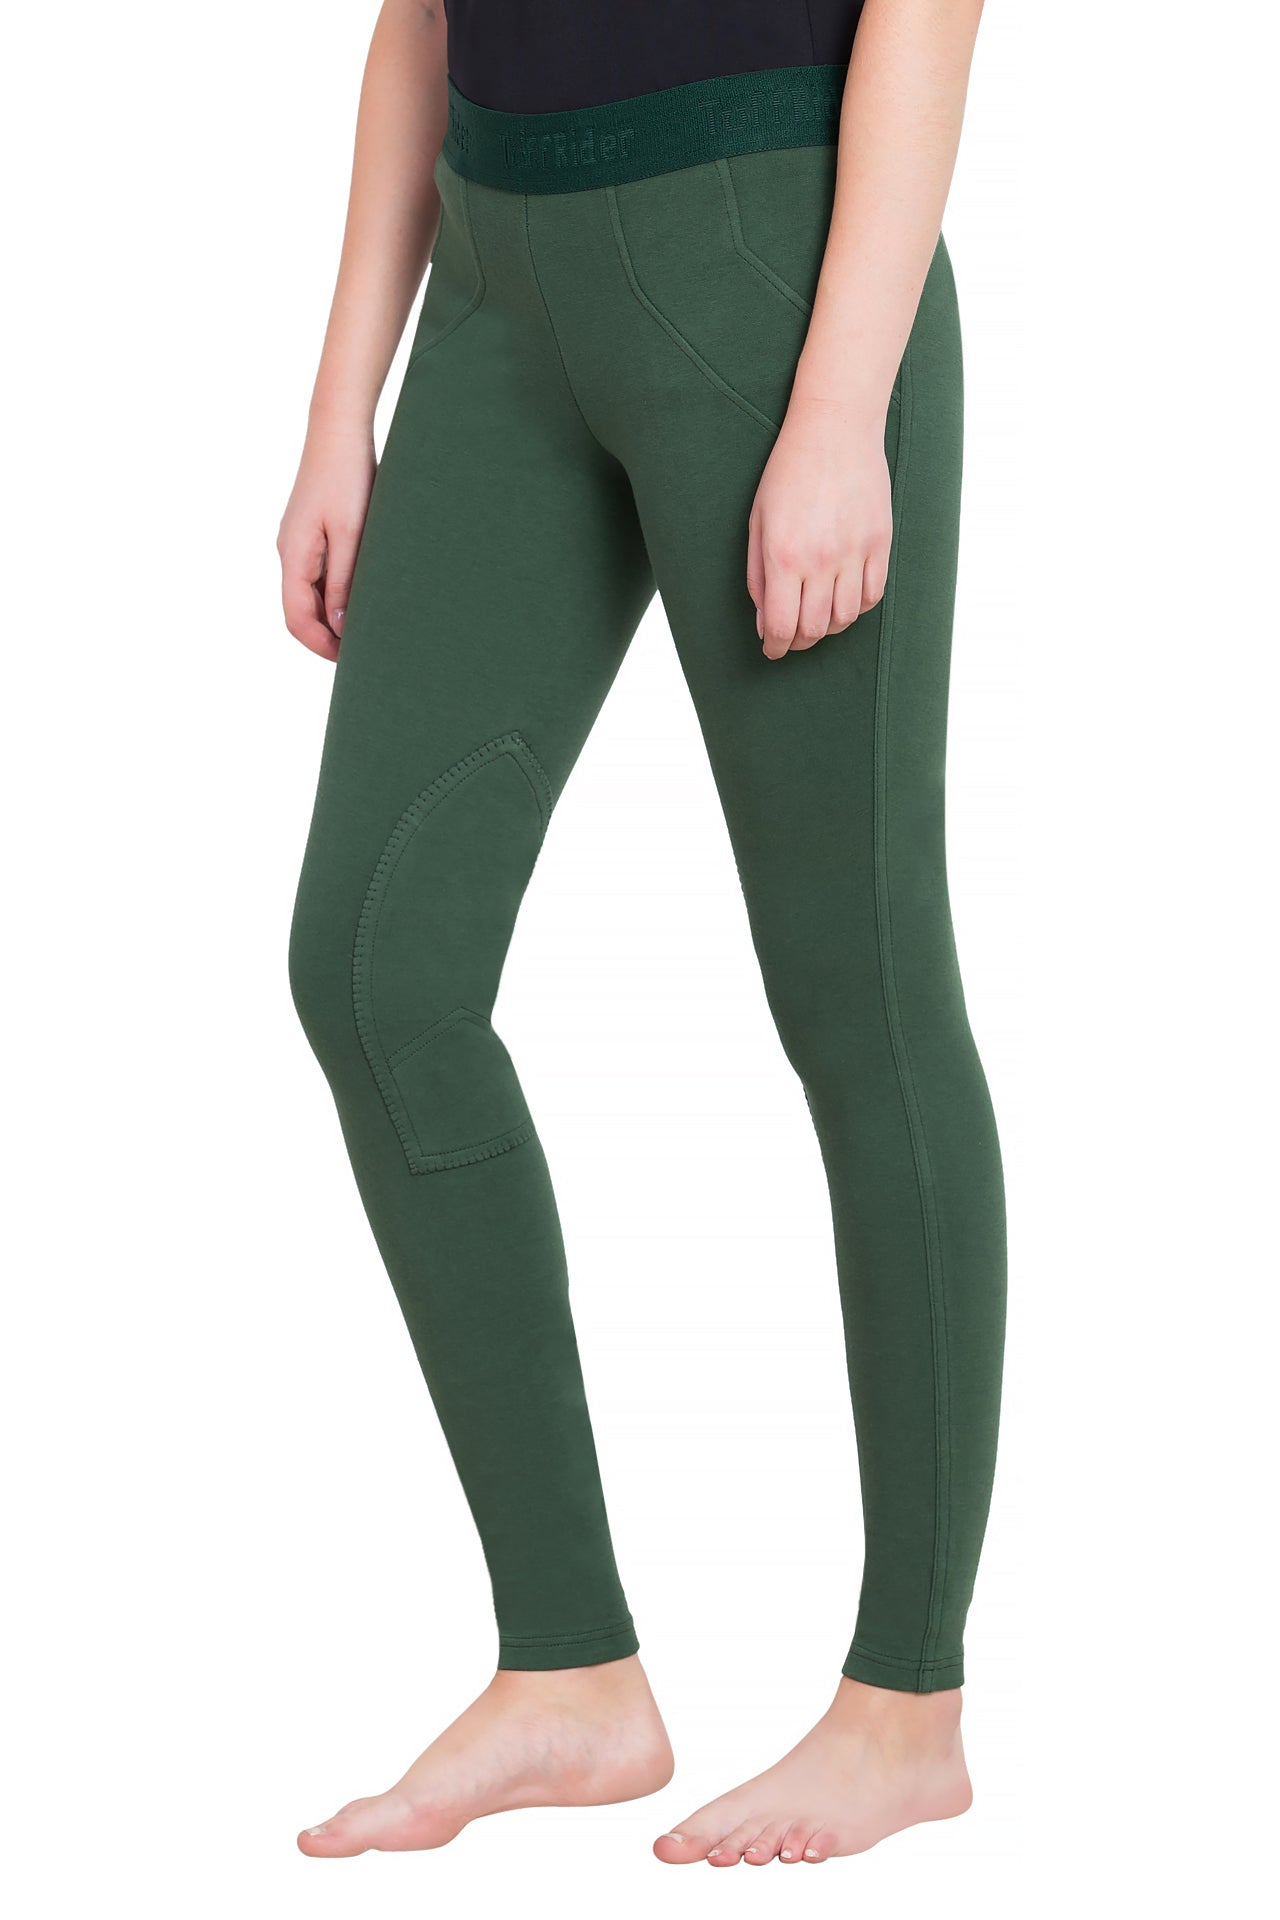 Ladies Cotton Schoolers Riding Tights